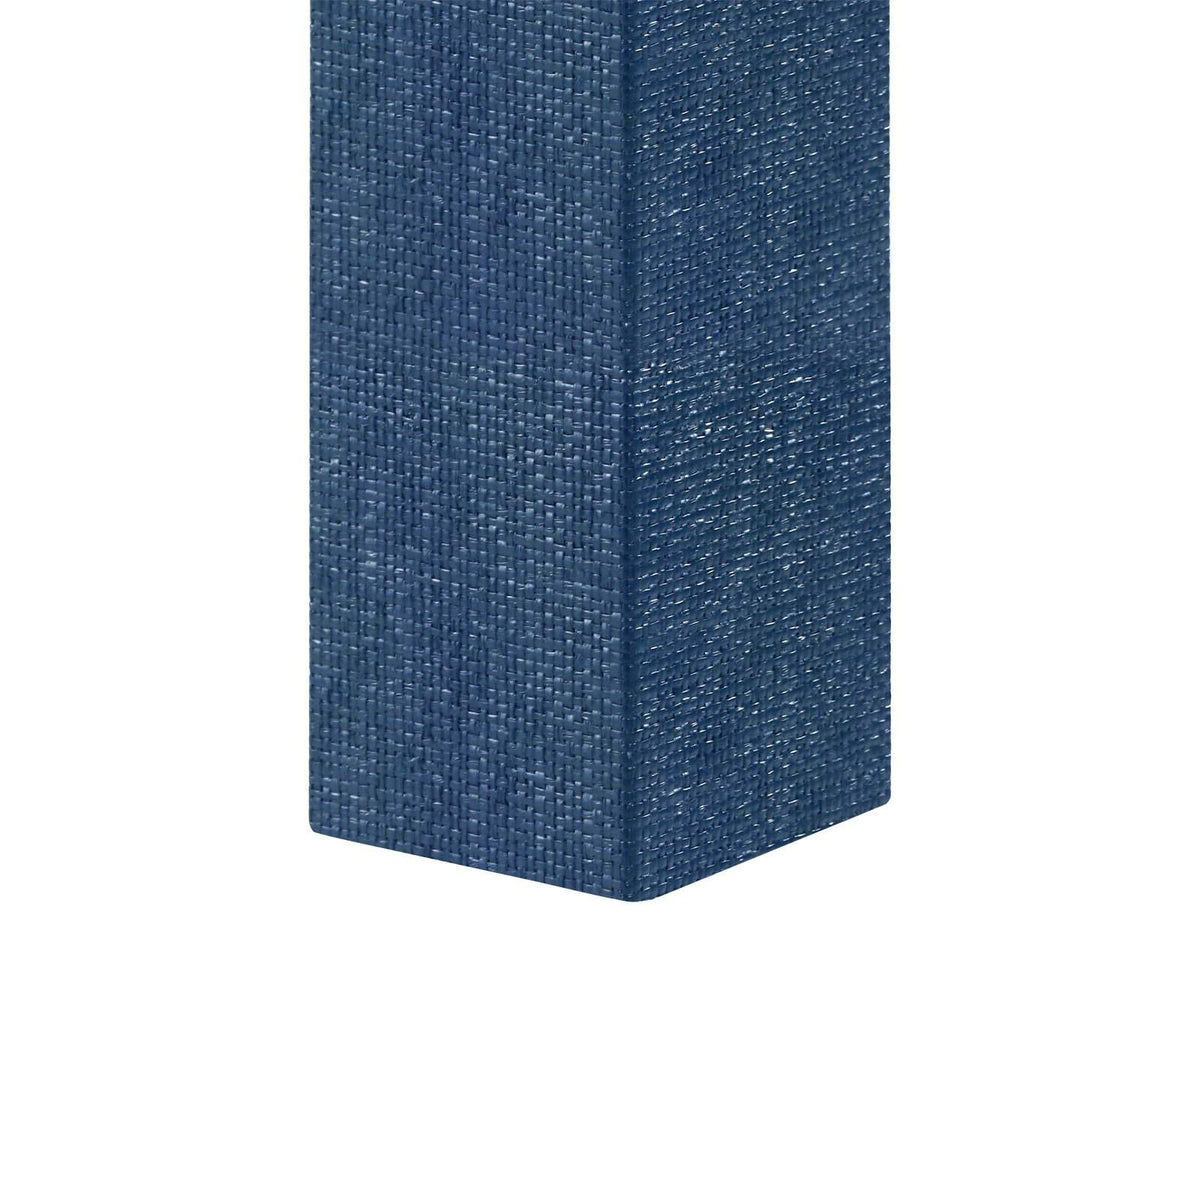 Bungalow 5 - PARSONS SIDE TABLE in NAVY BLUE-Bungalow 5-Blue Hand Home